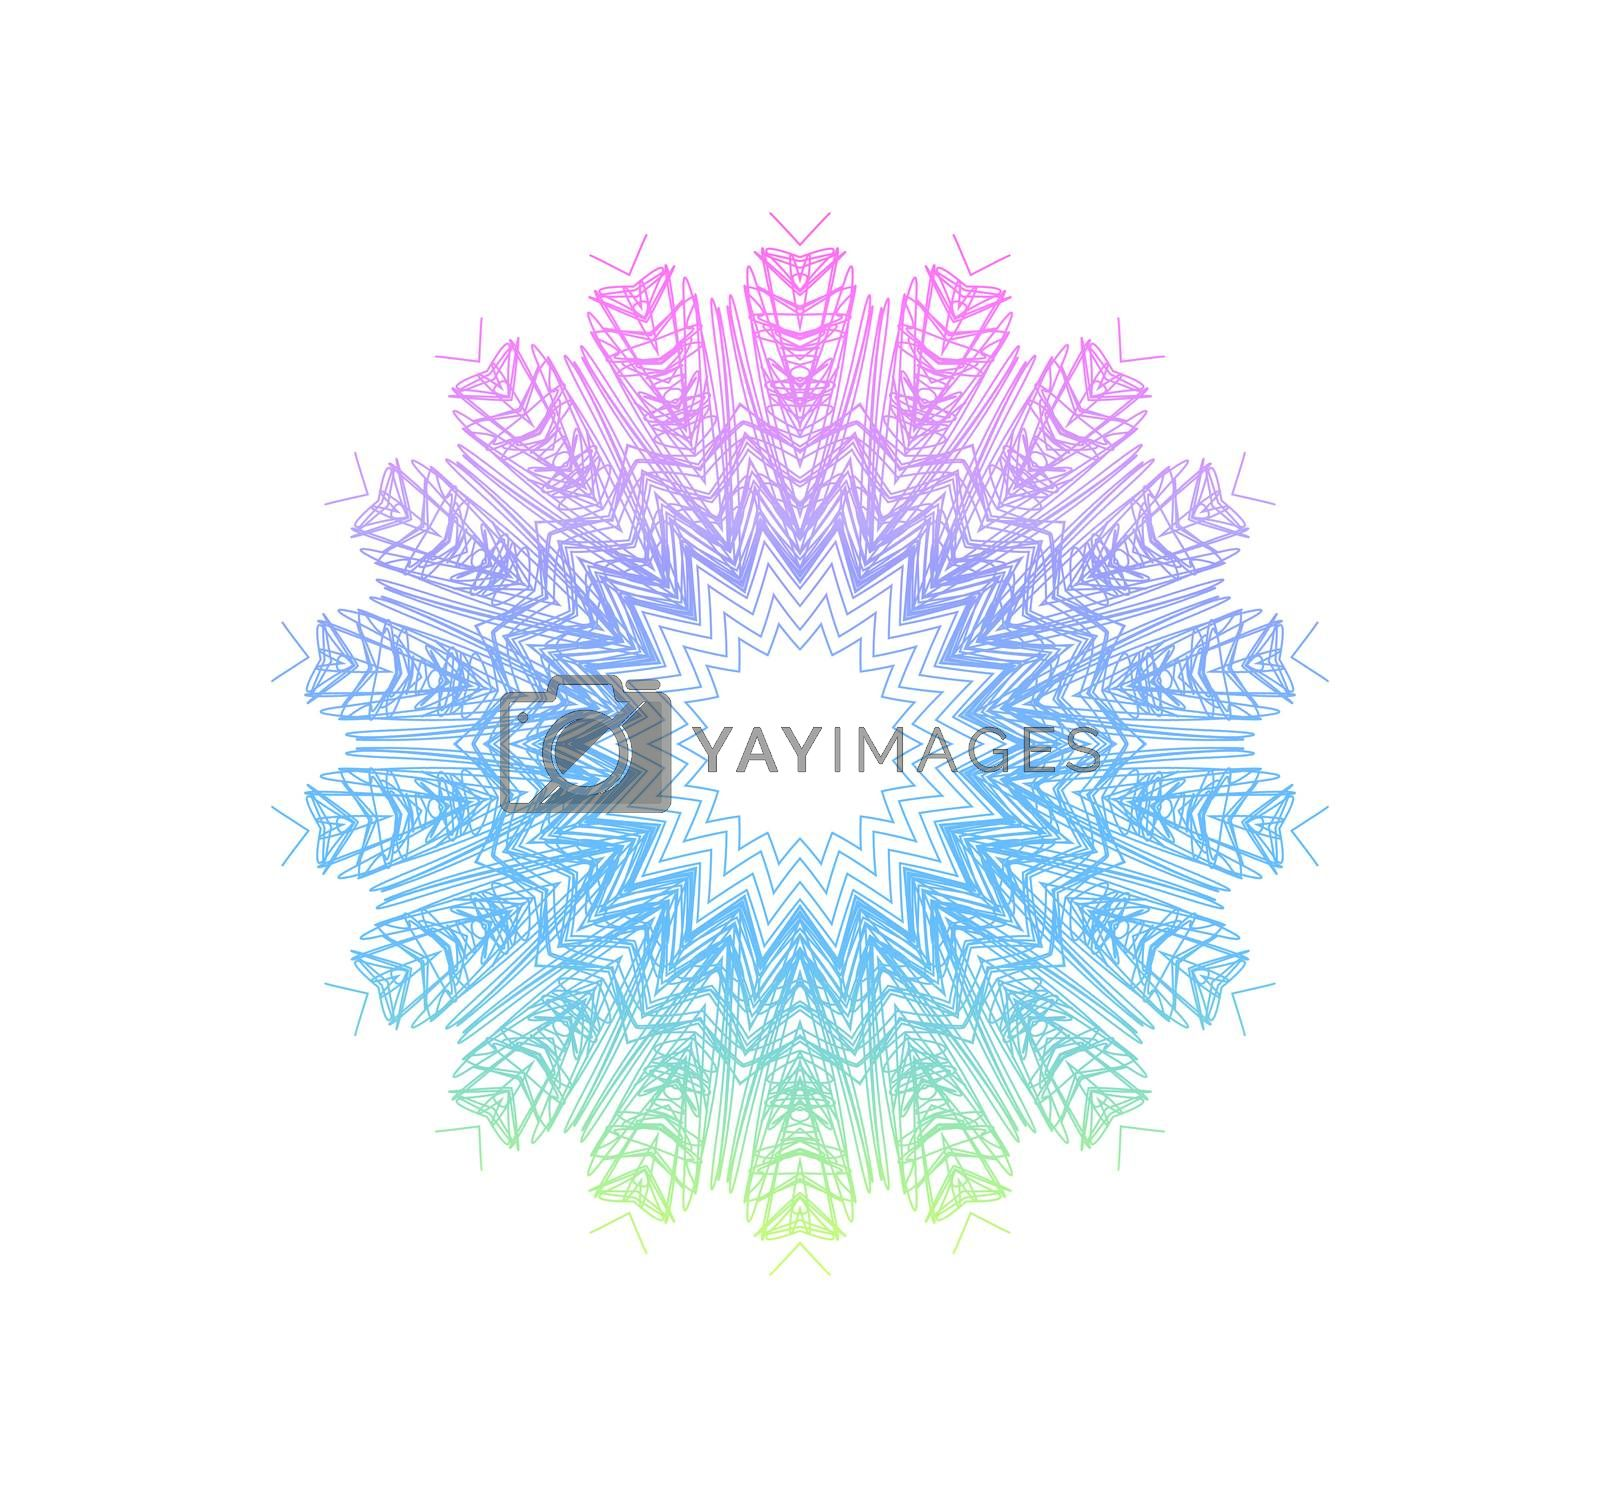 White background with abstract concentric pattern shape